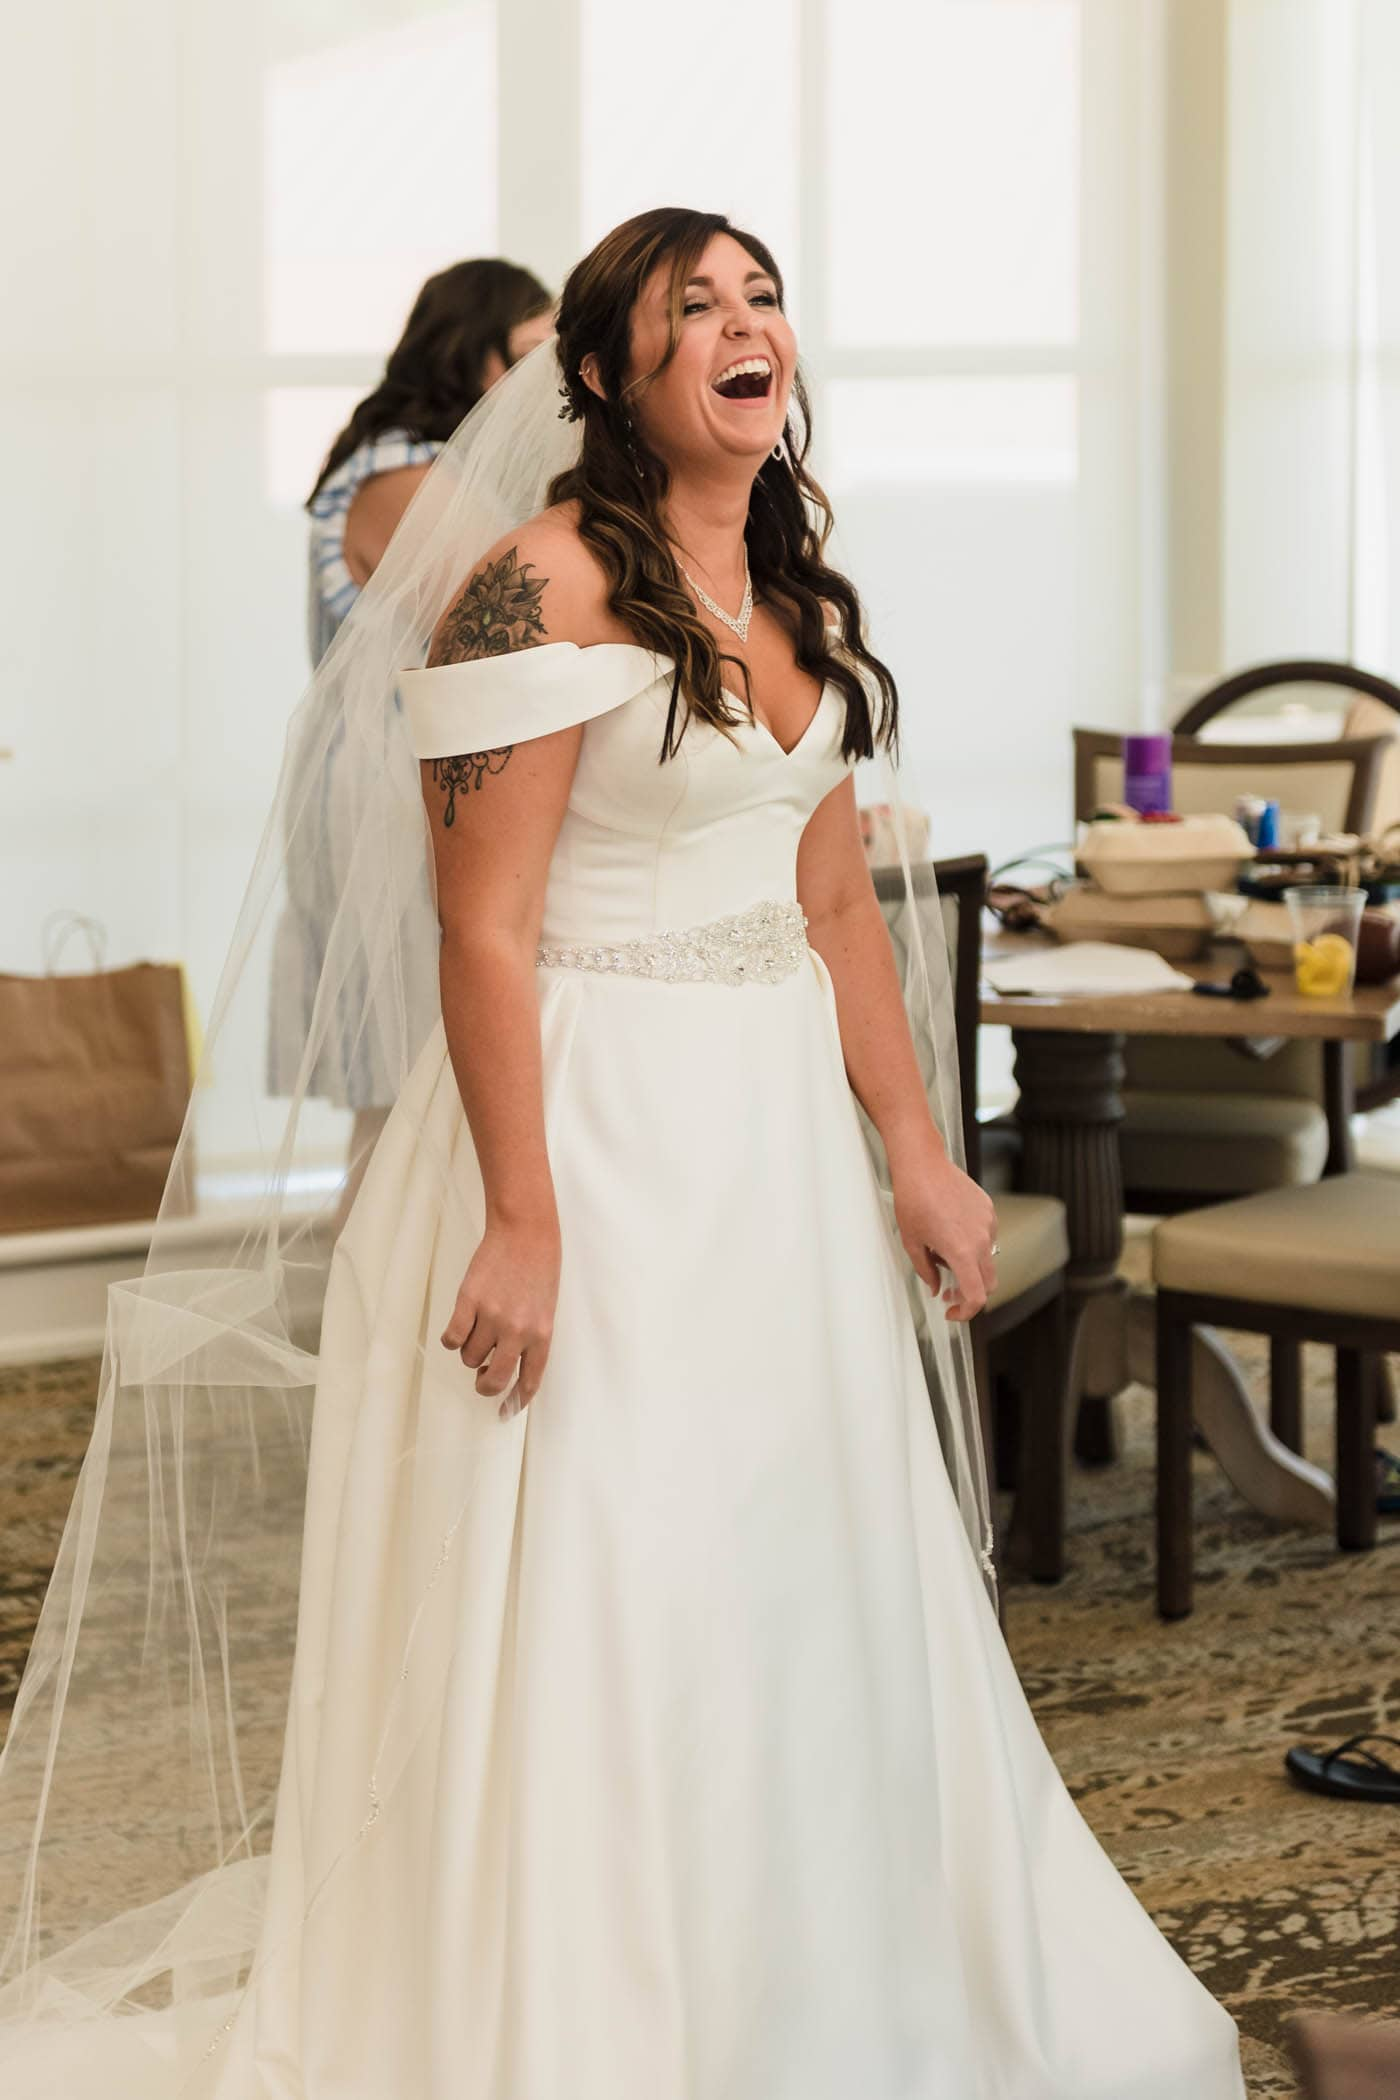 Bride wearing wedding dress and veil laughing by Susan DeLoach Photography SC wedding photographers